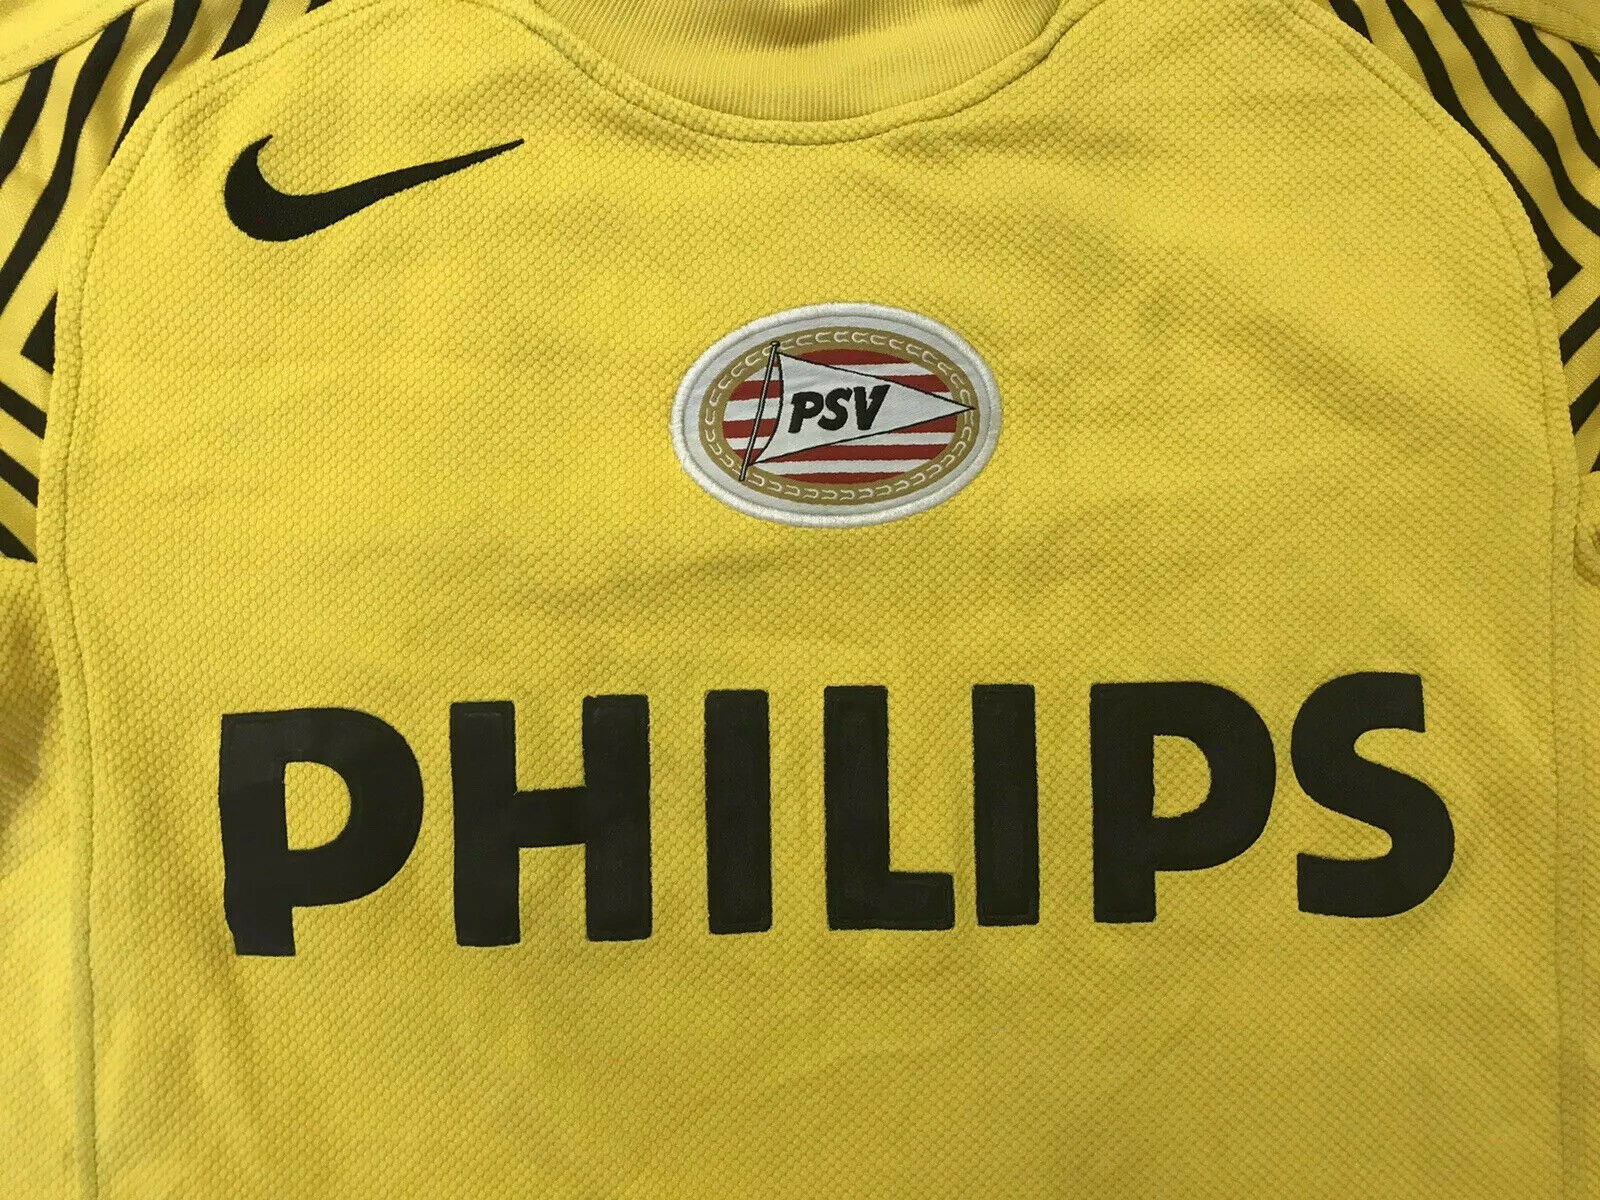 PSV Eindhoven 2005/2006 Goalkeeper Size S Nike jersey